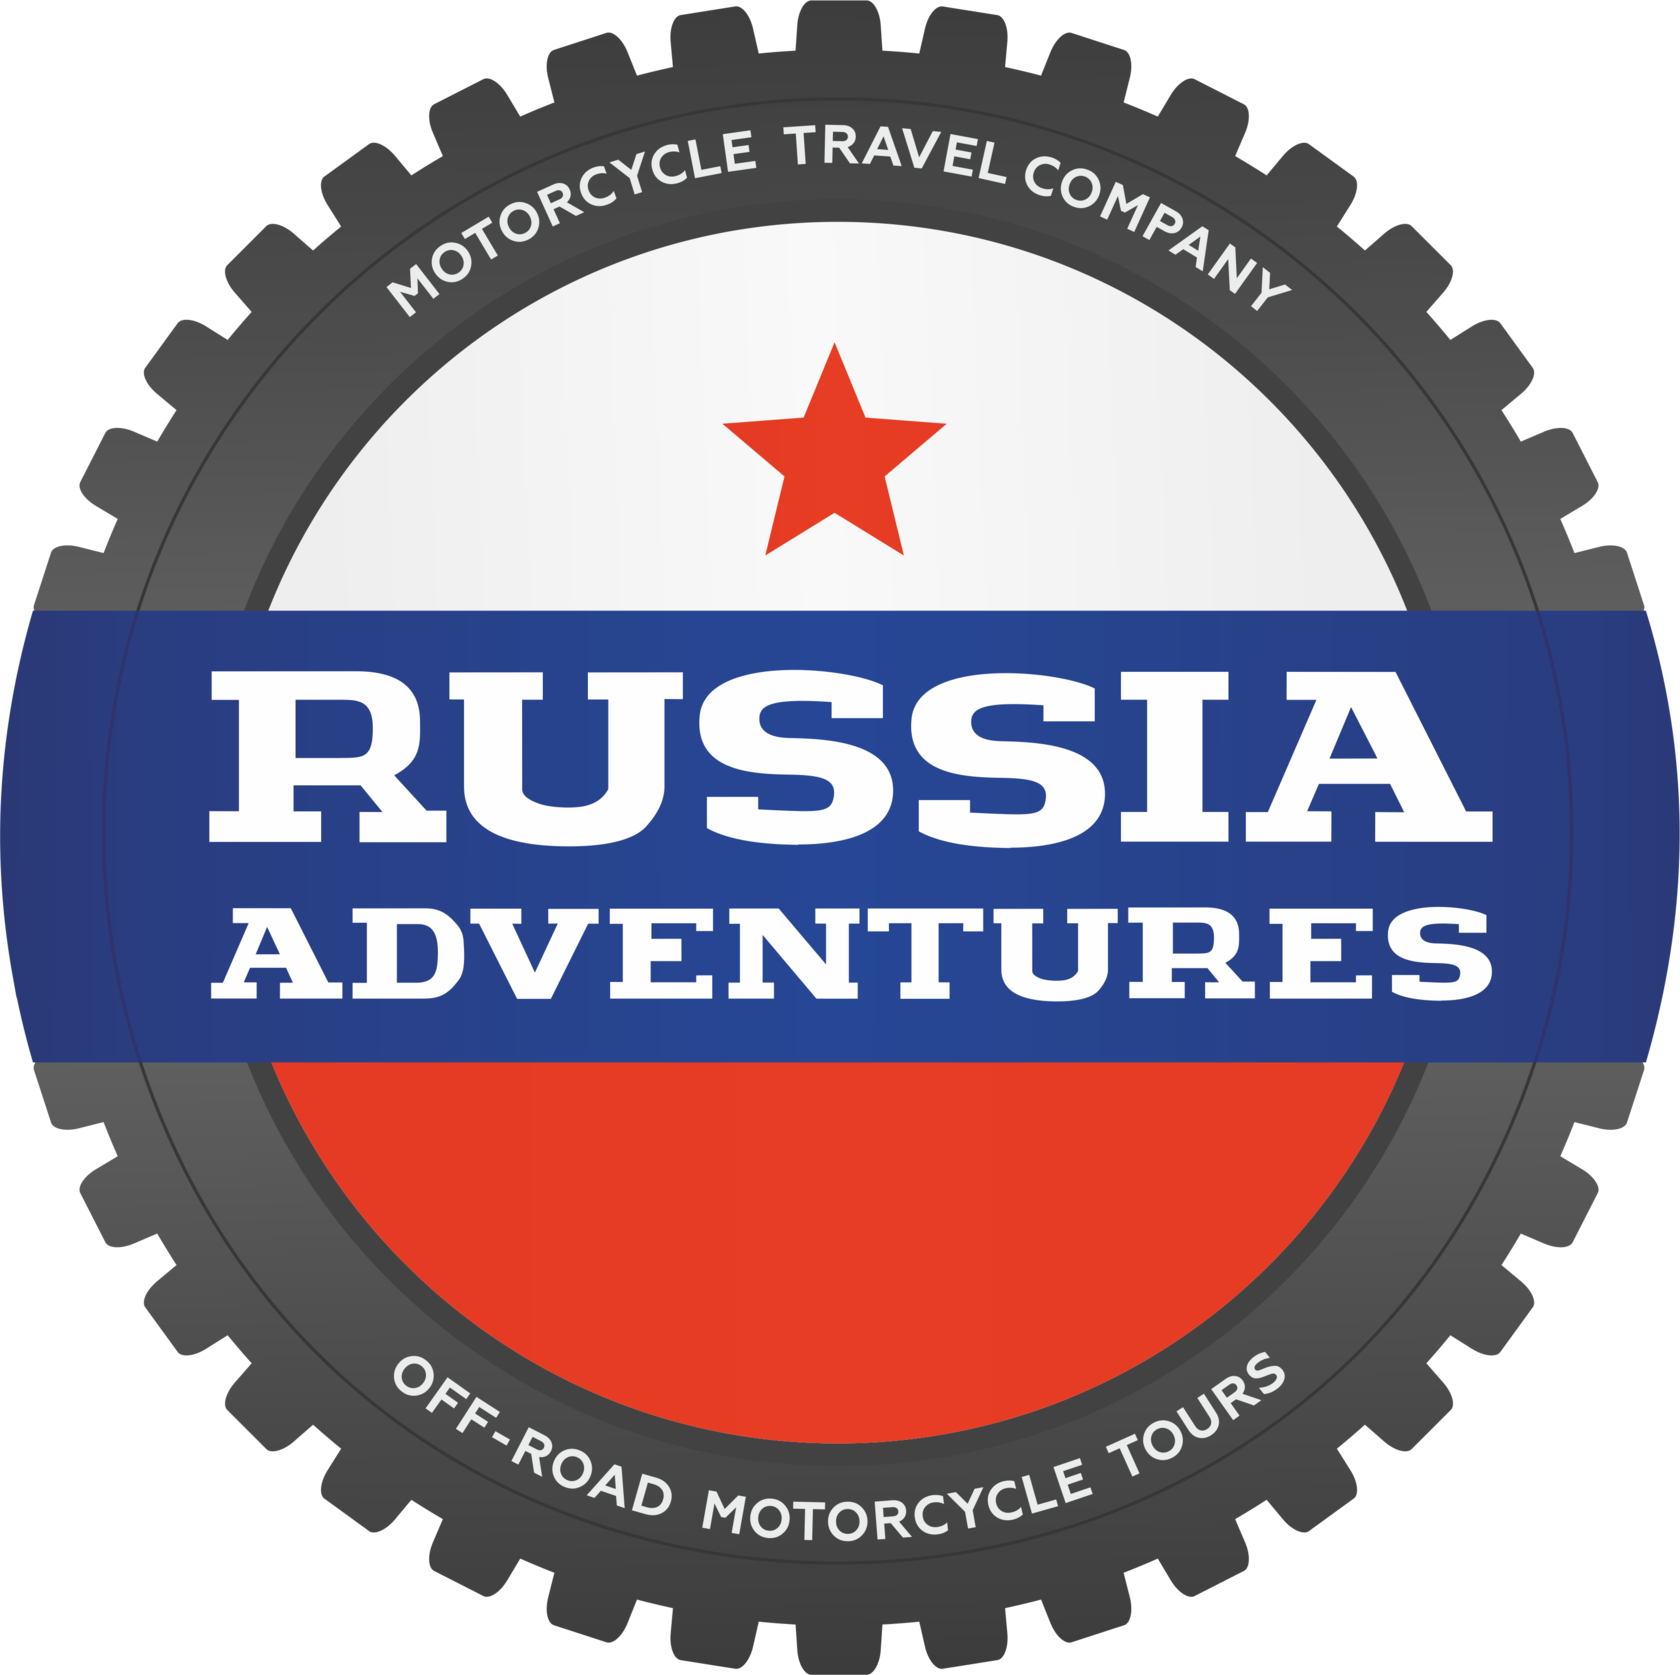 Russia Adventures Off-road Motorcycle Tours